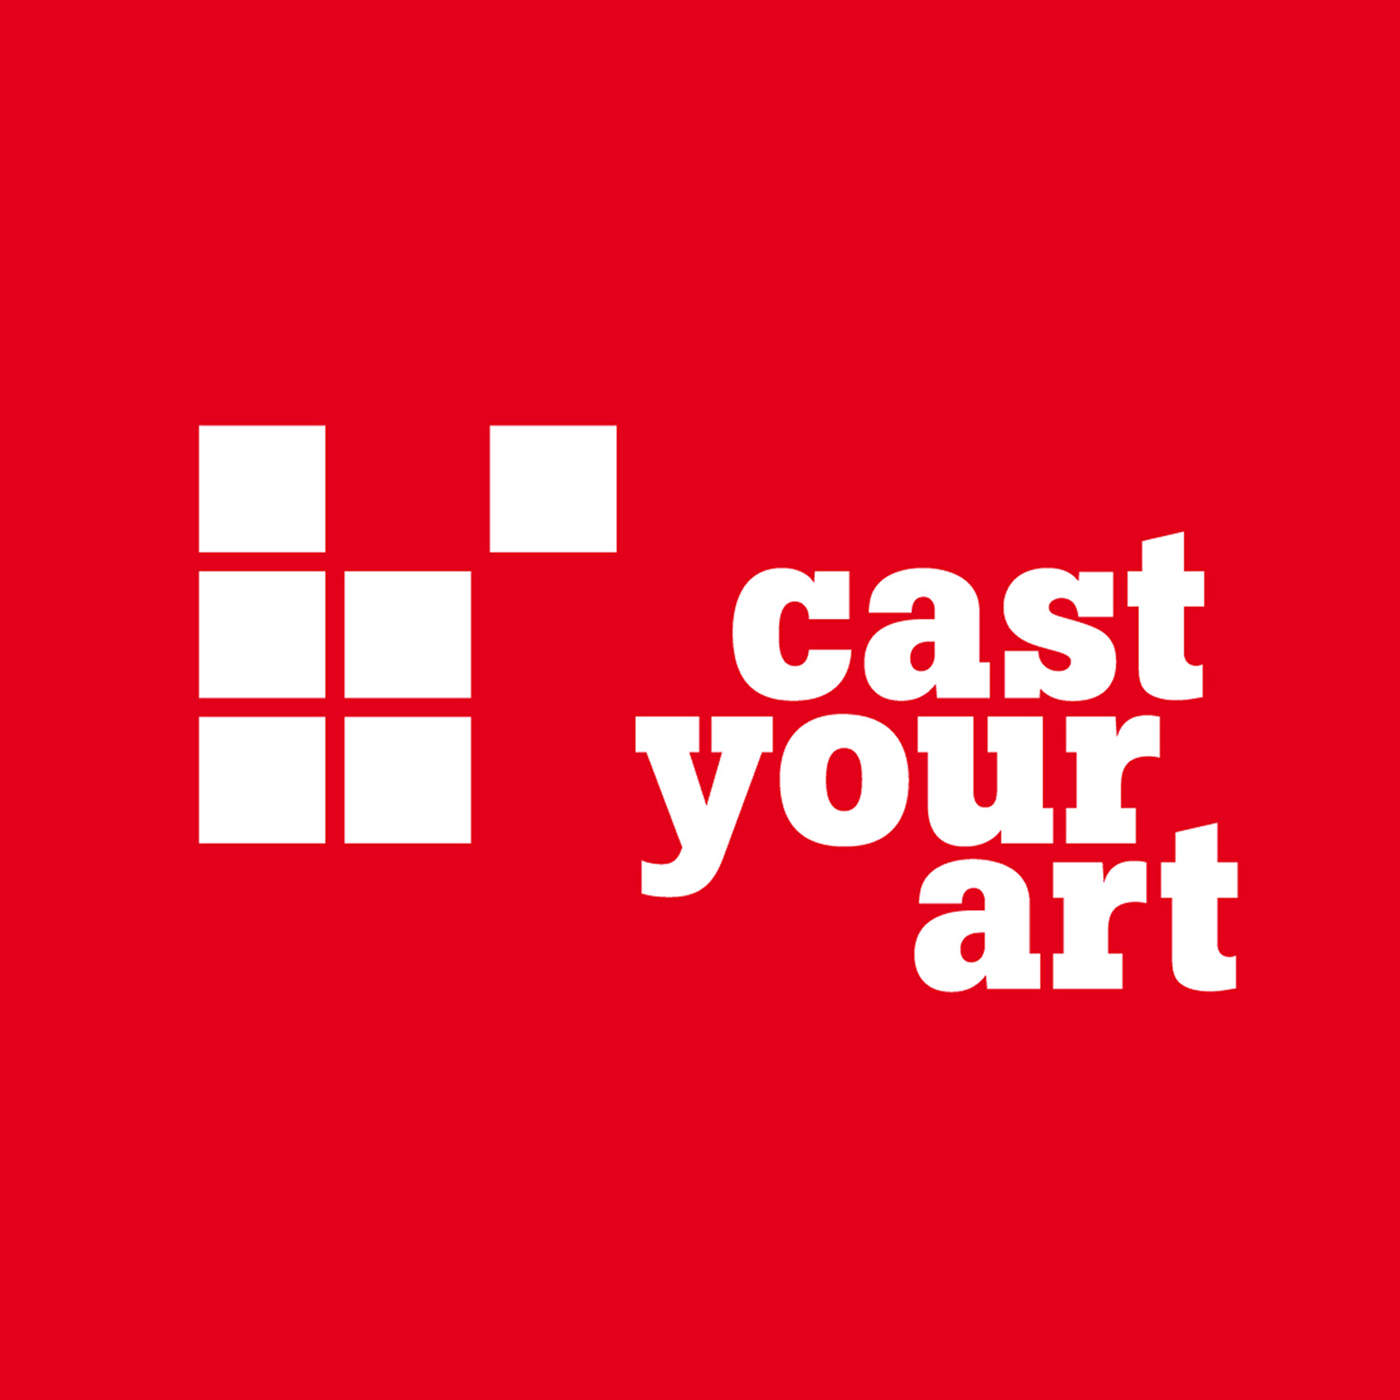 CastYourArt - Art moves people